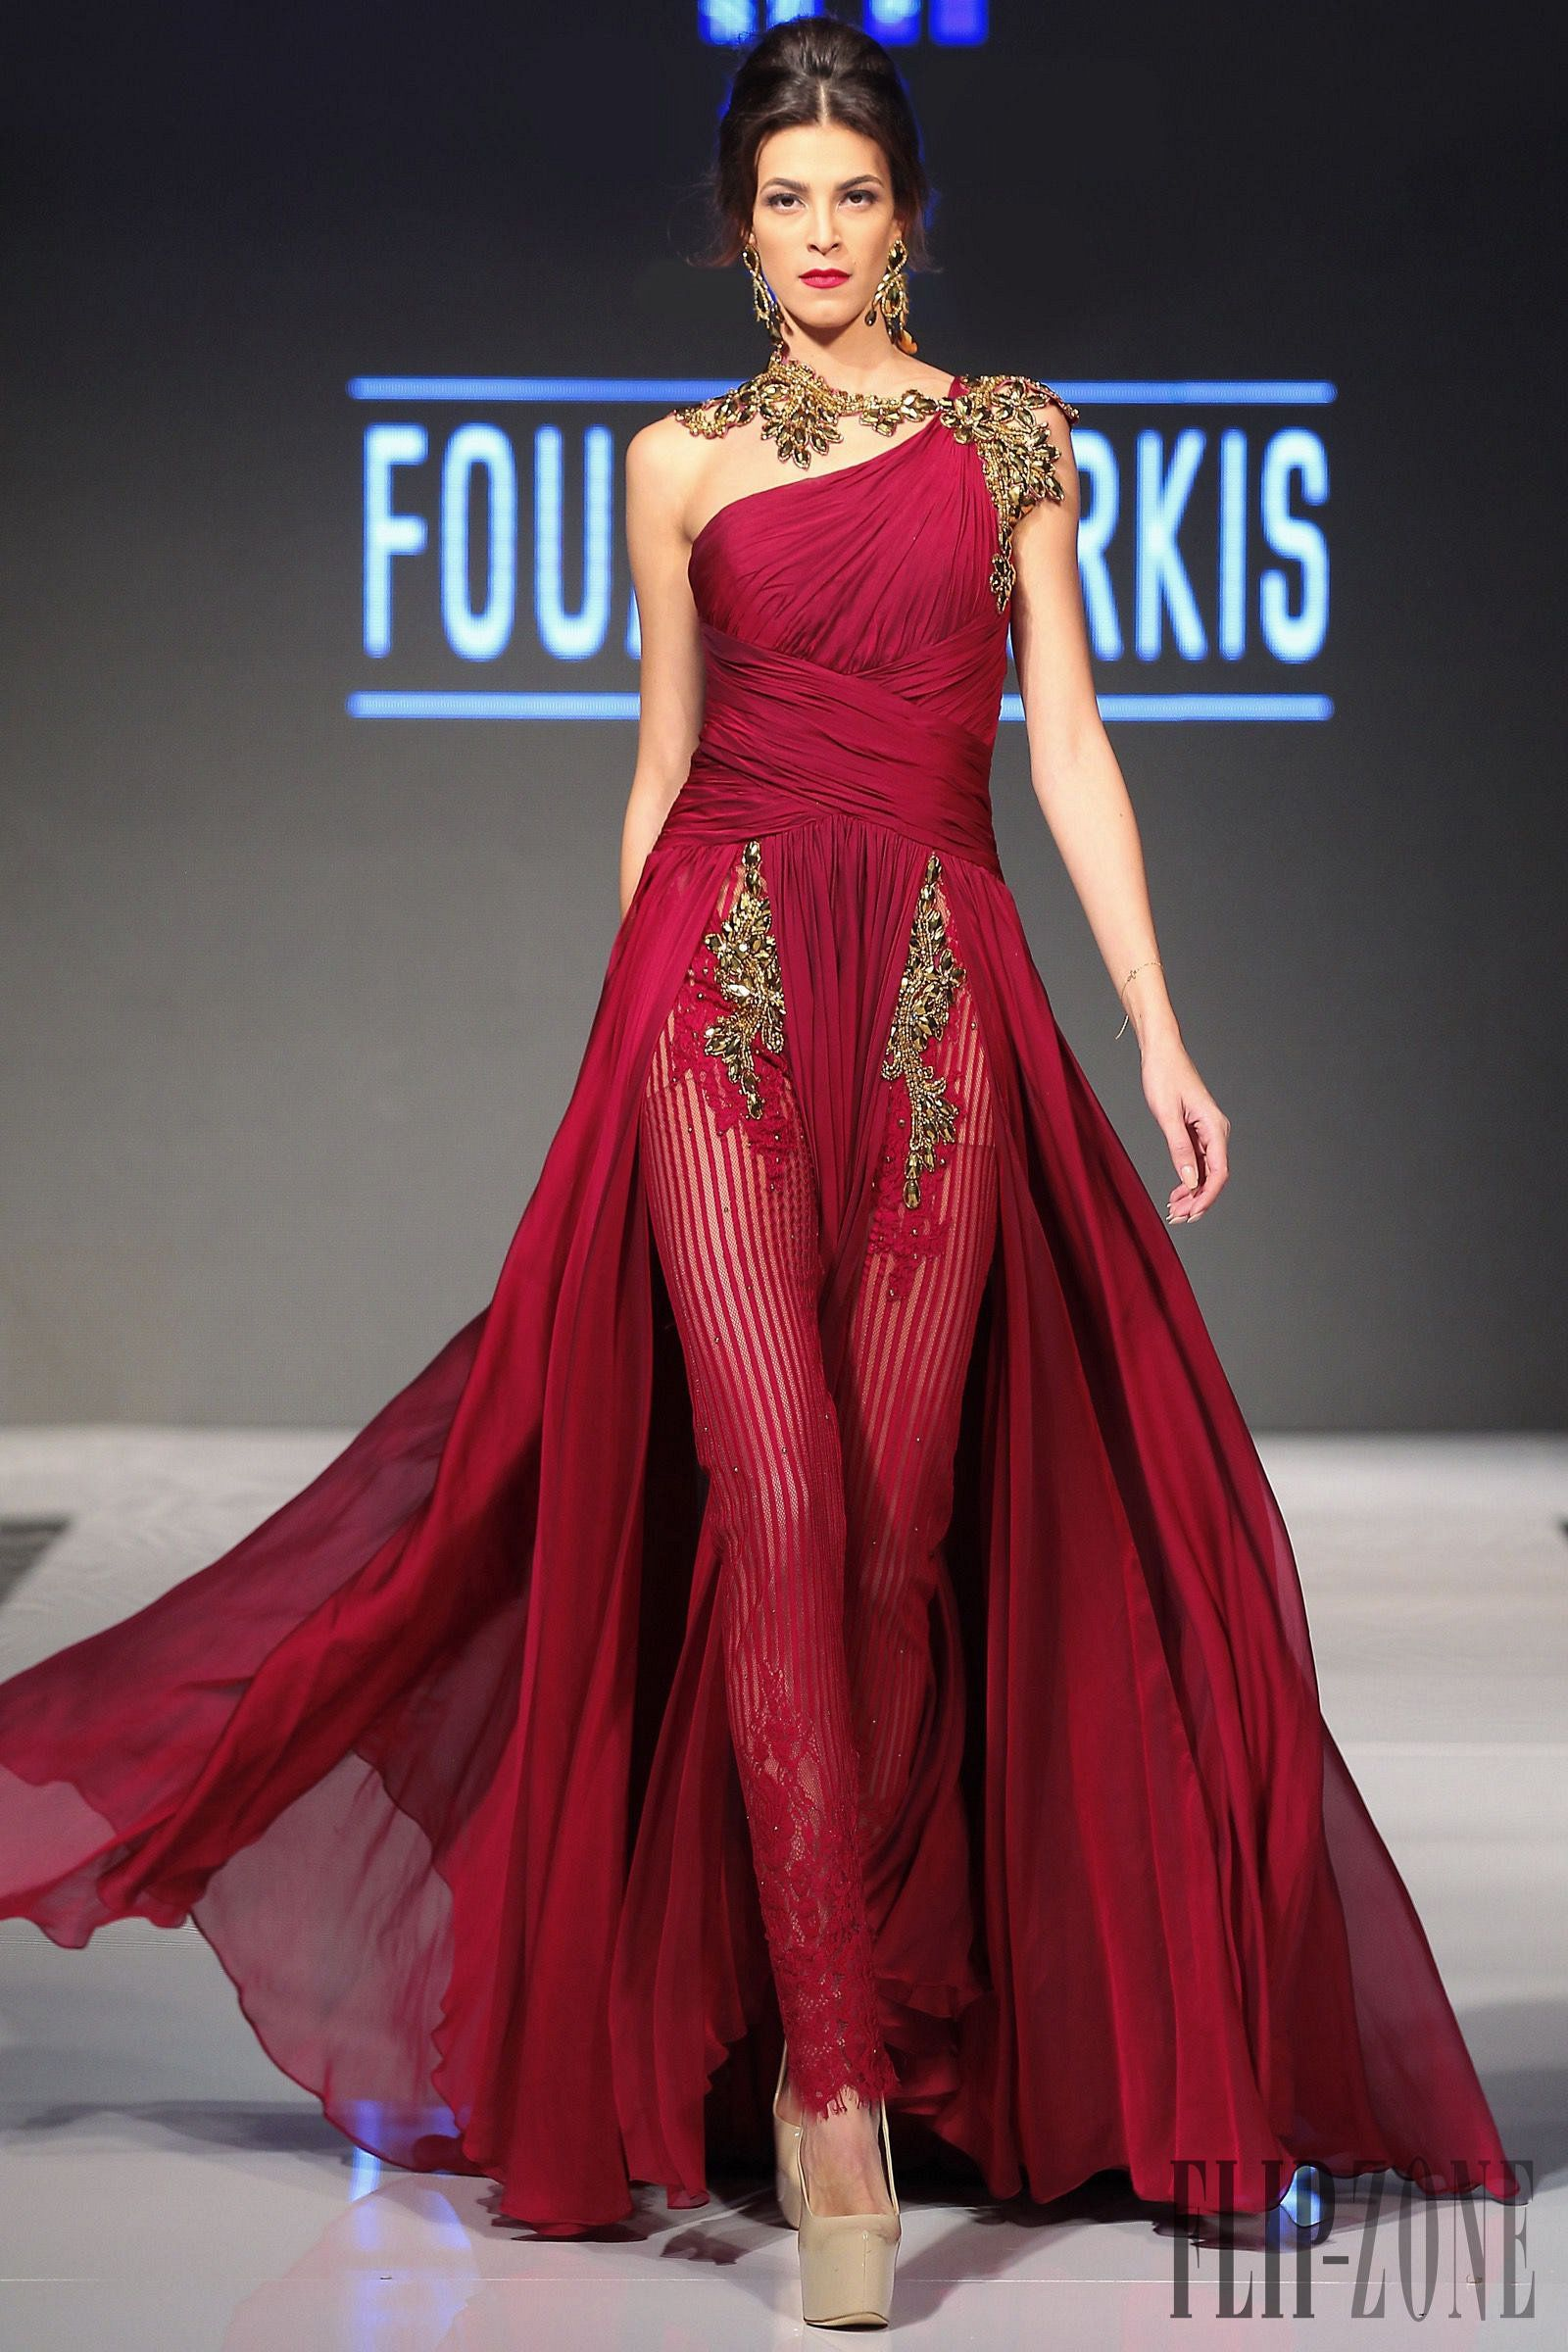 afa769a4a5f Fouad Sarkis Spring-summer 2016 - Ready-to-Wear in 2019